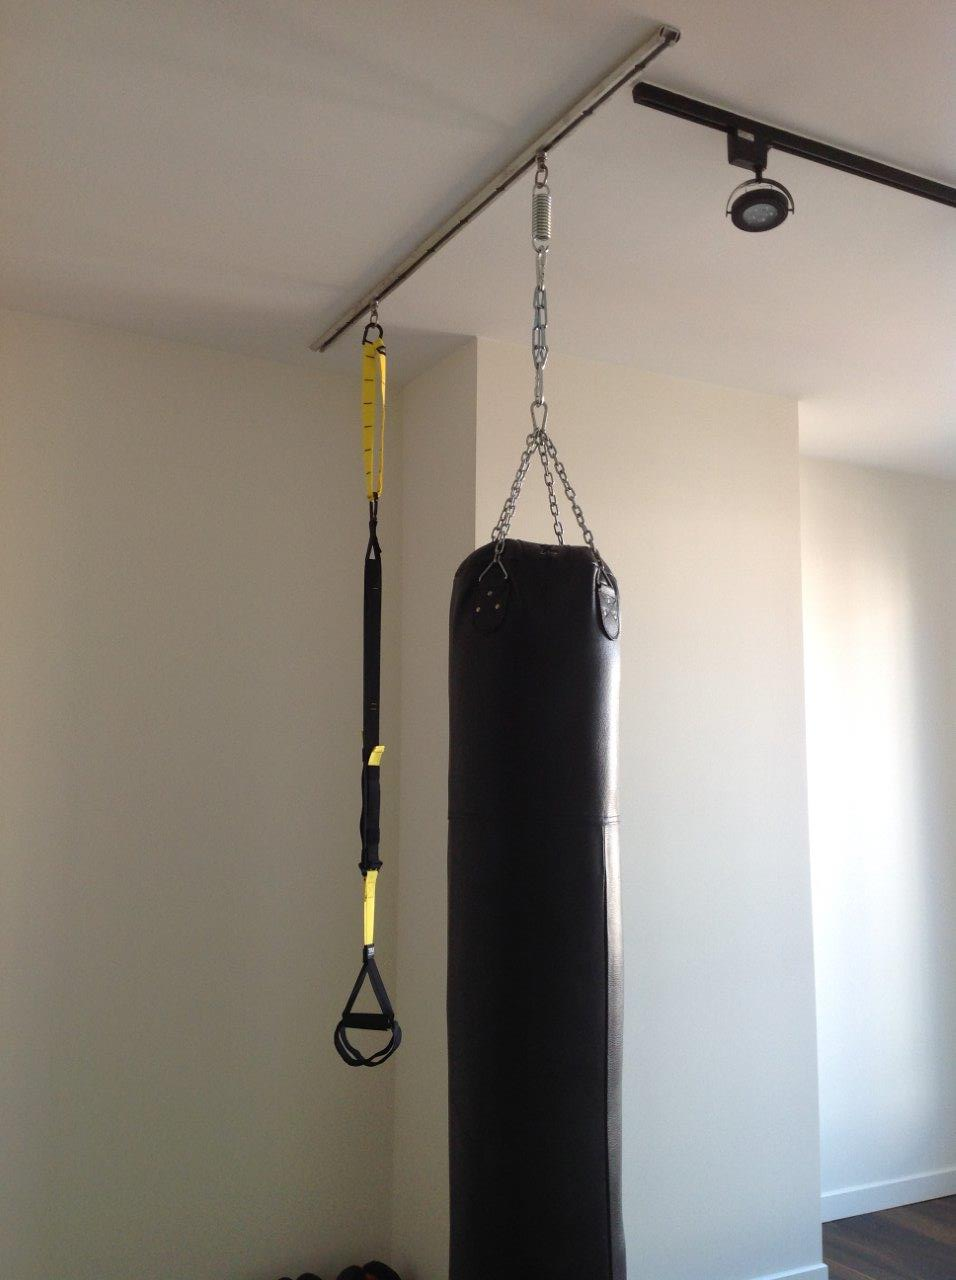 tuffrail collection » heavy bag - overhead homes » trx & heavy bag